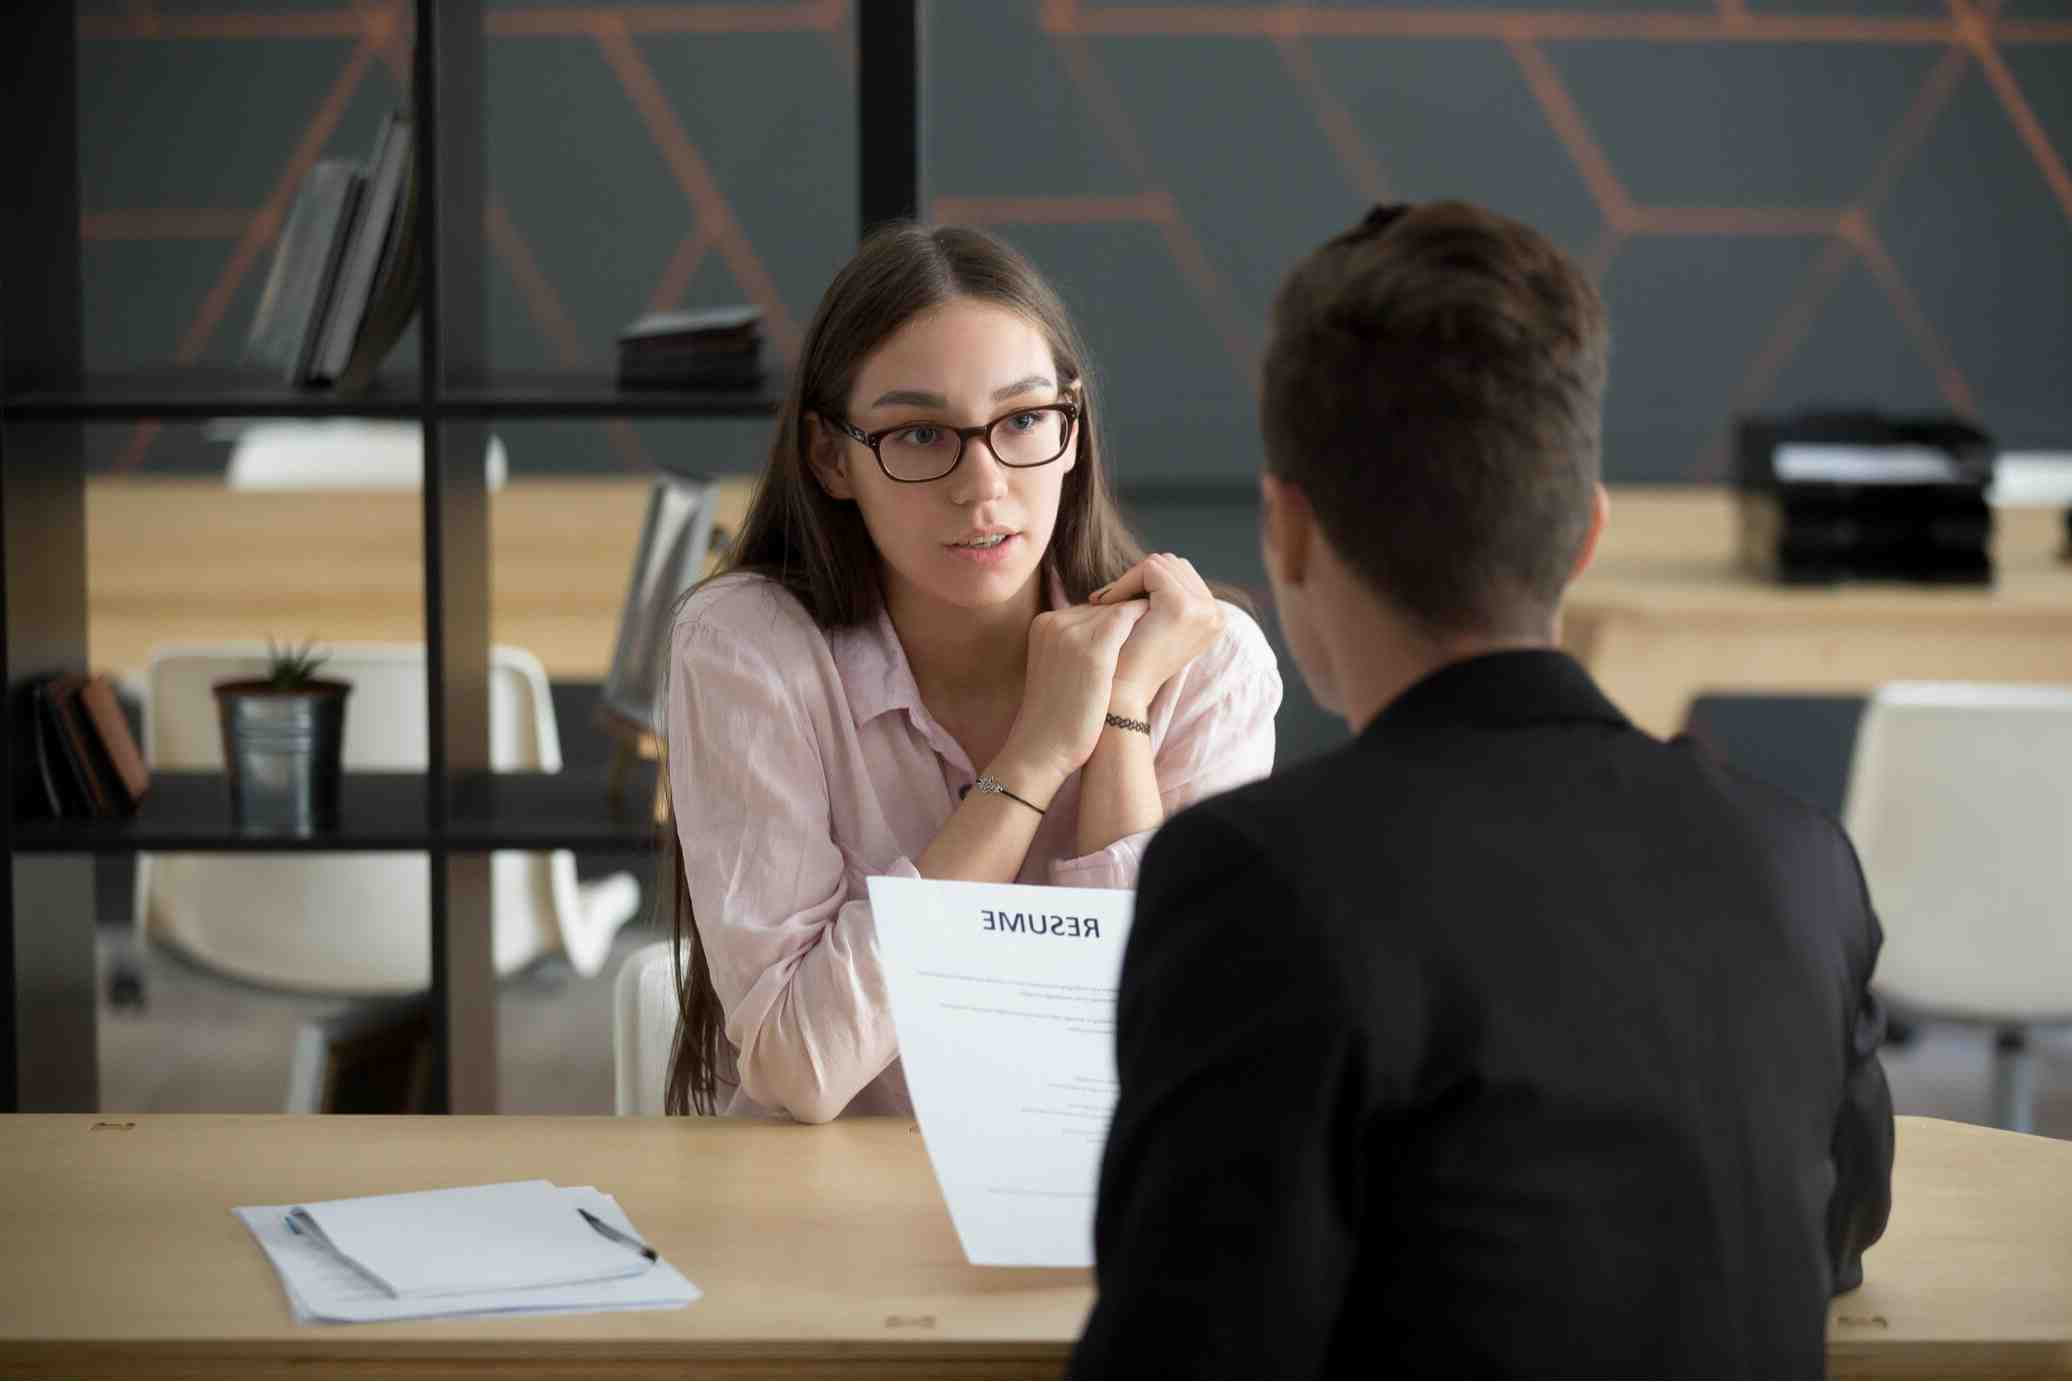 How much does it cost to hire a job recruiter?